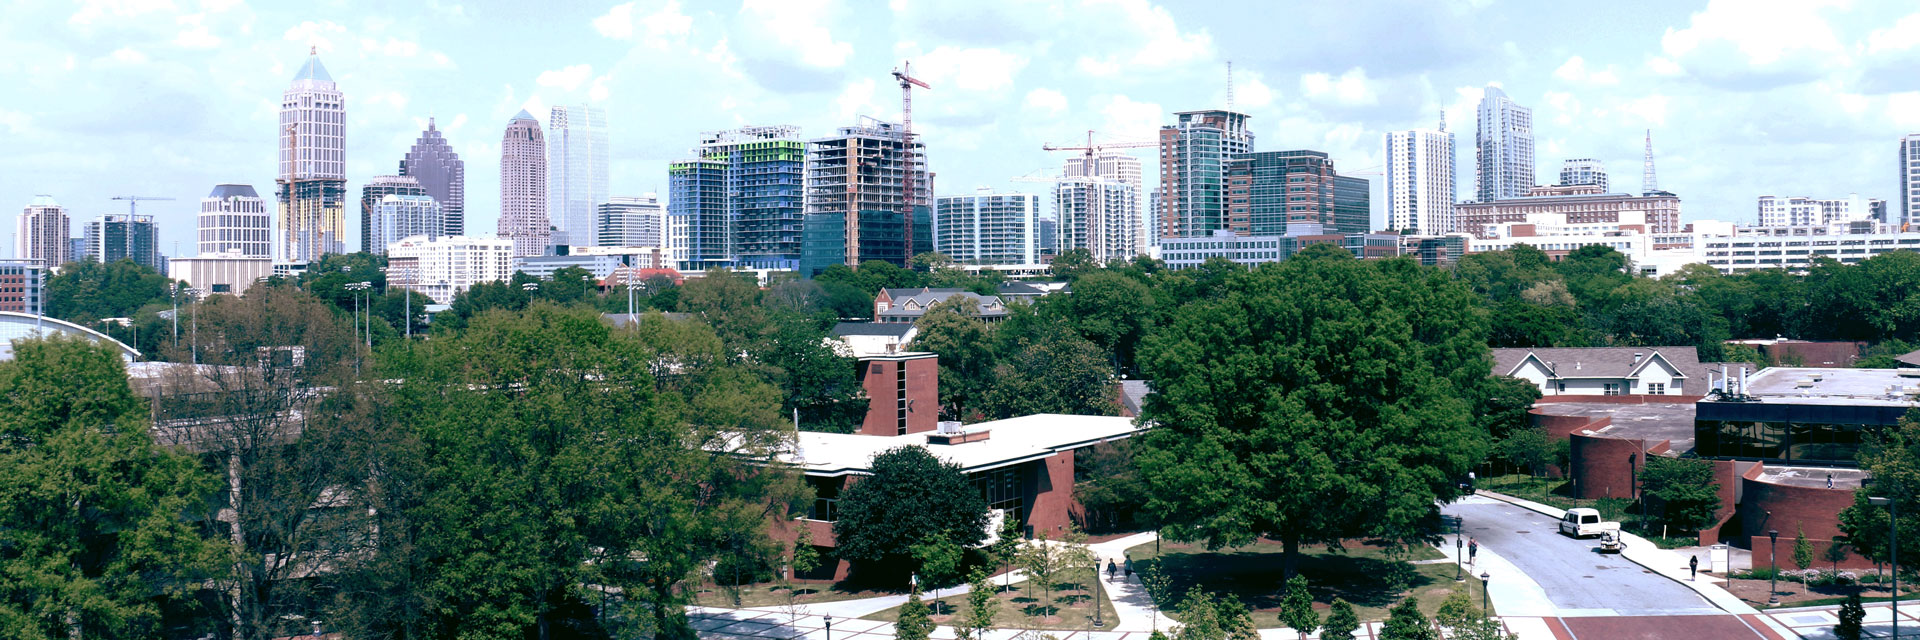 School with Atlanta in the background